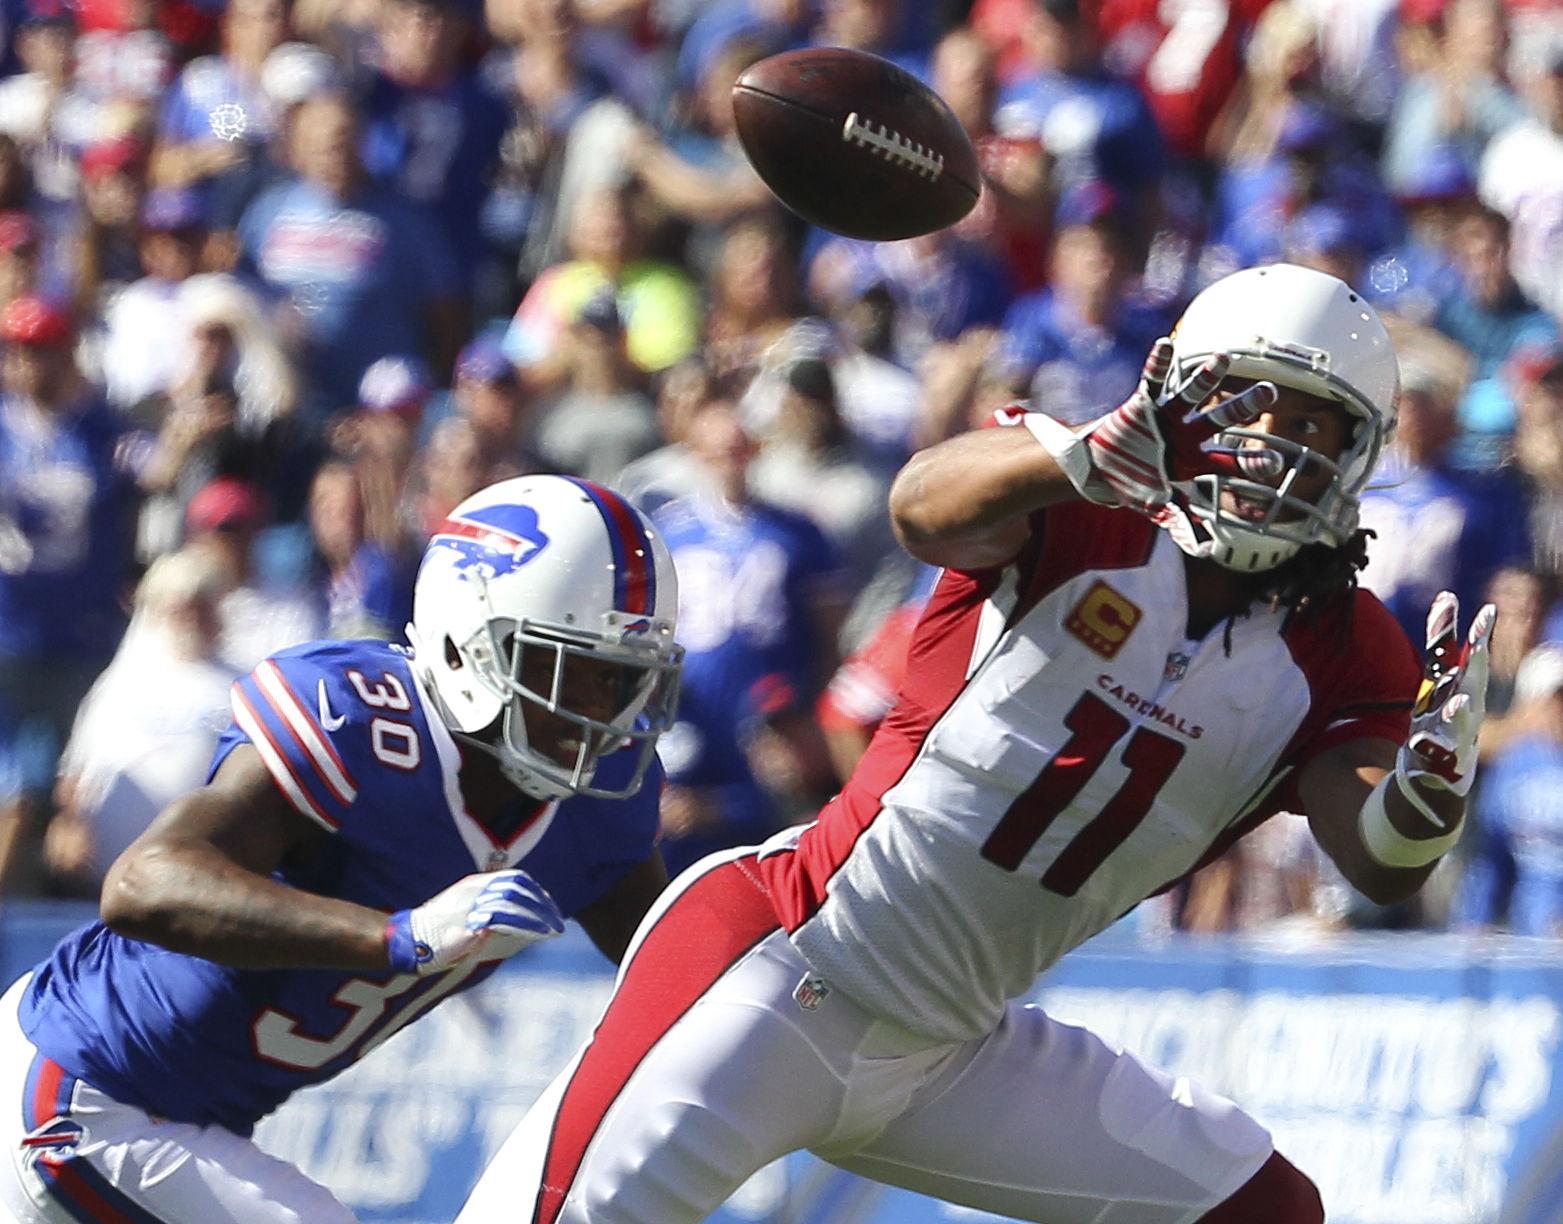 Arizona Cardinals wide receiver Larry Fitzgerald (11) makes a catch in front of Buffalo Bills defensive back Corey White (30) during the second half of an NFL football game on Sunday, Sept. 25, 2016, in Orchard Park, N.Y. (AP Photo/Bill Wippert)